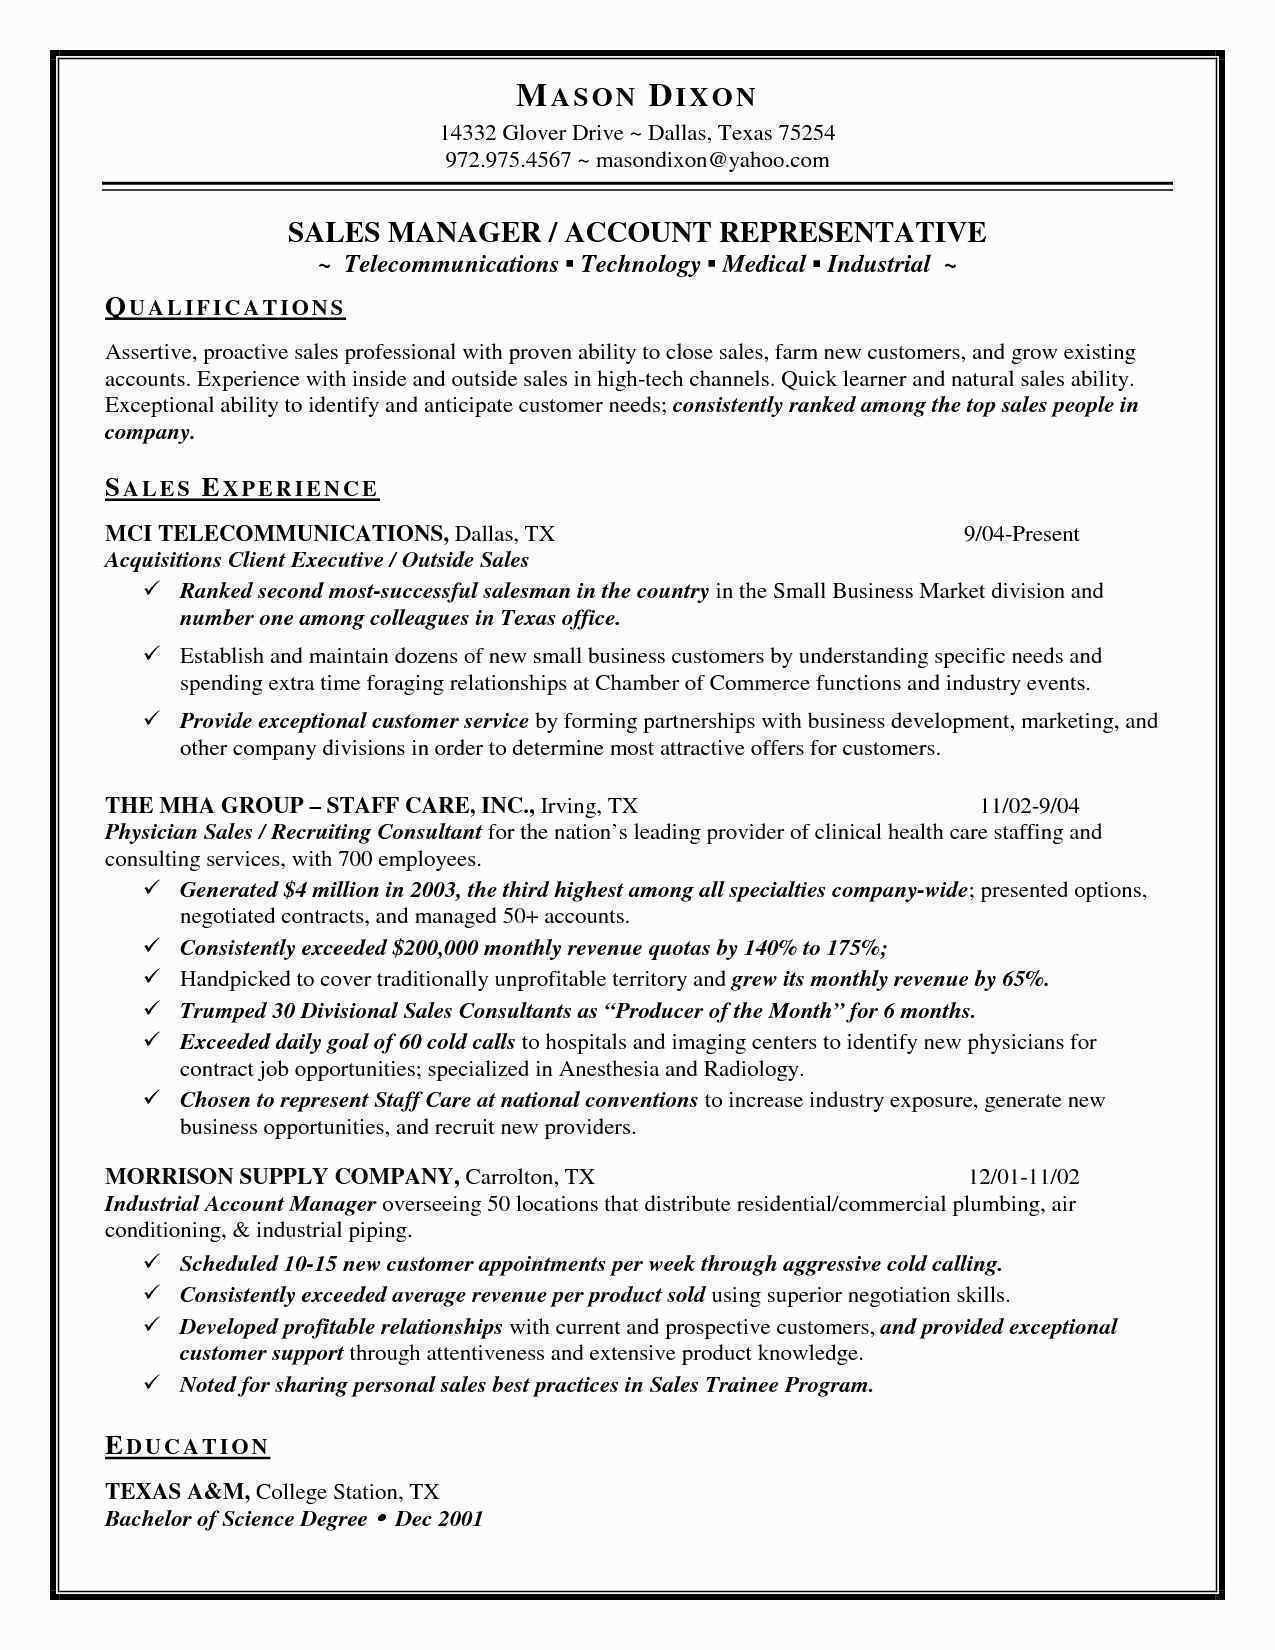 sales rep resume sample Collection-Resume Samples For Sales Representative New Sales Resume Sample New Retail Resume Sample Best Retail Resume 0d 6-a